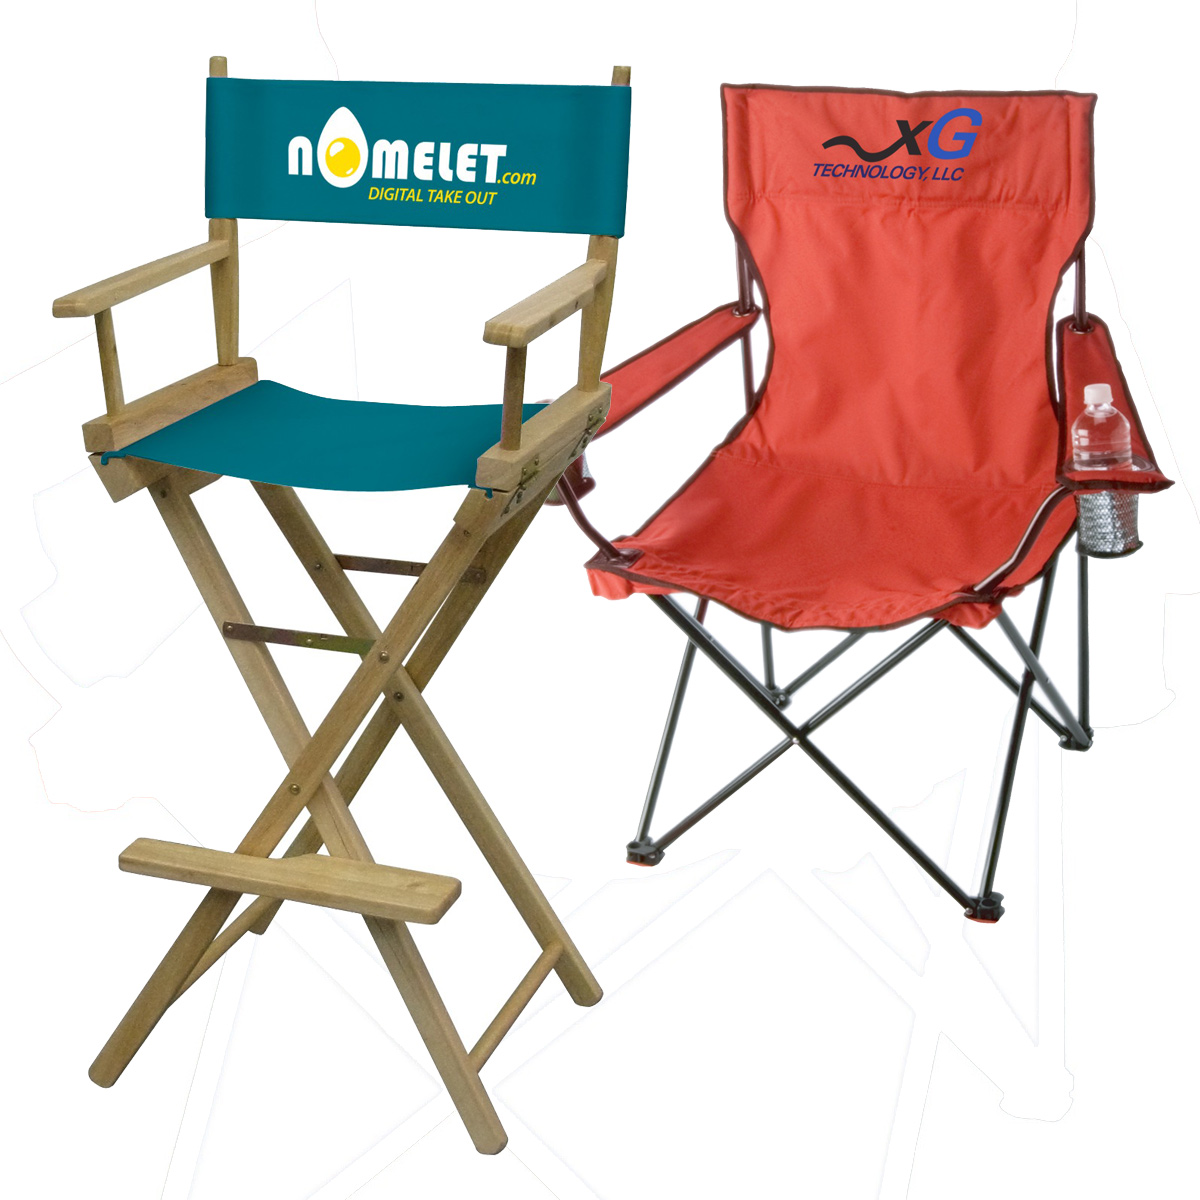 chairs-for-tradeshows-iowa